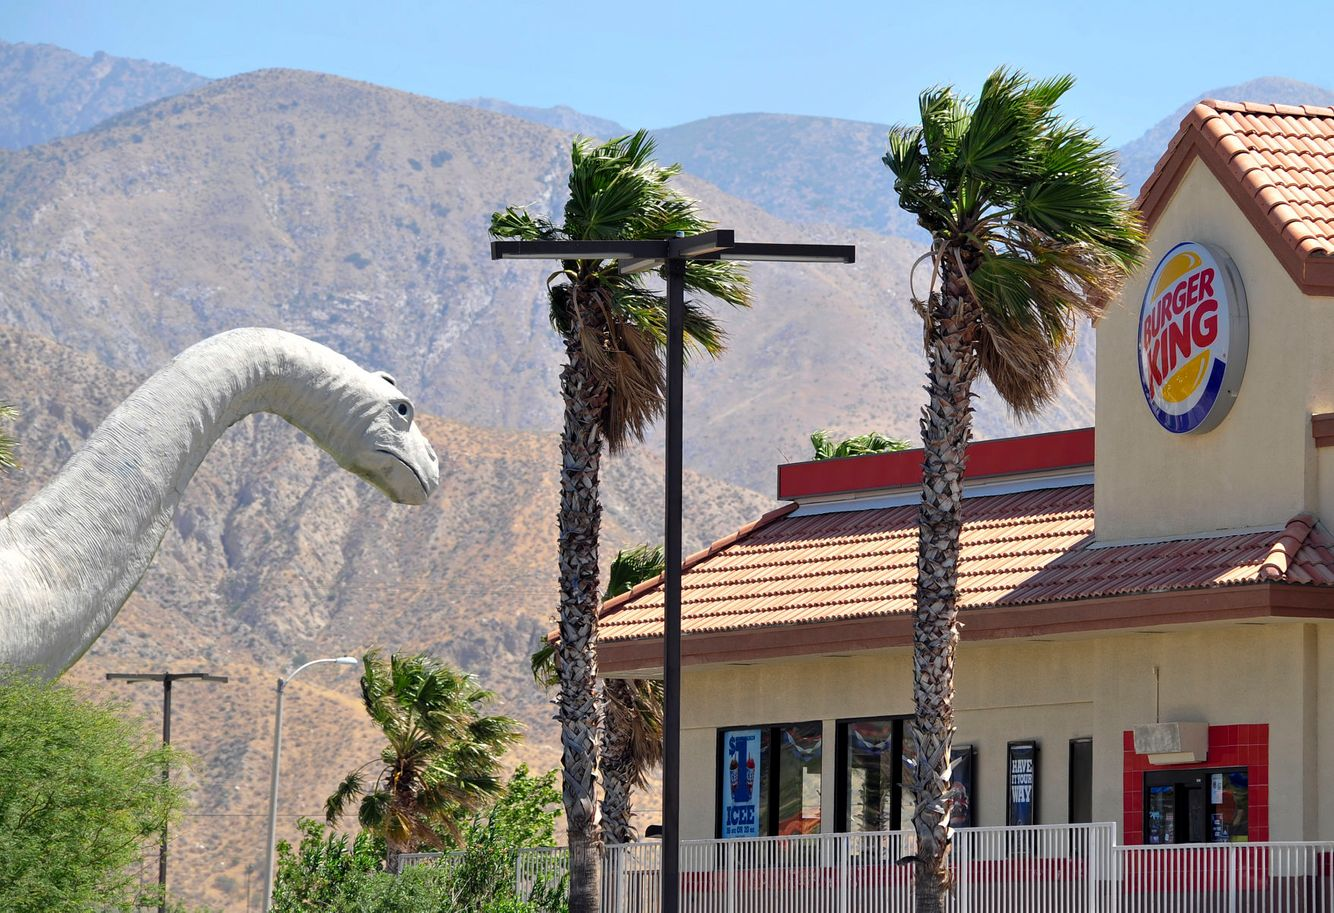 A dinosaur statue is seen near a Burger King in Palm Desert, California.